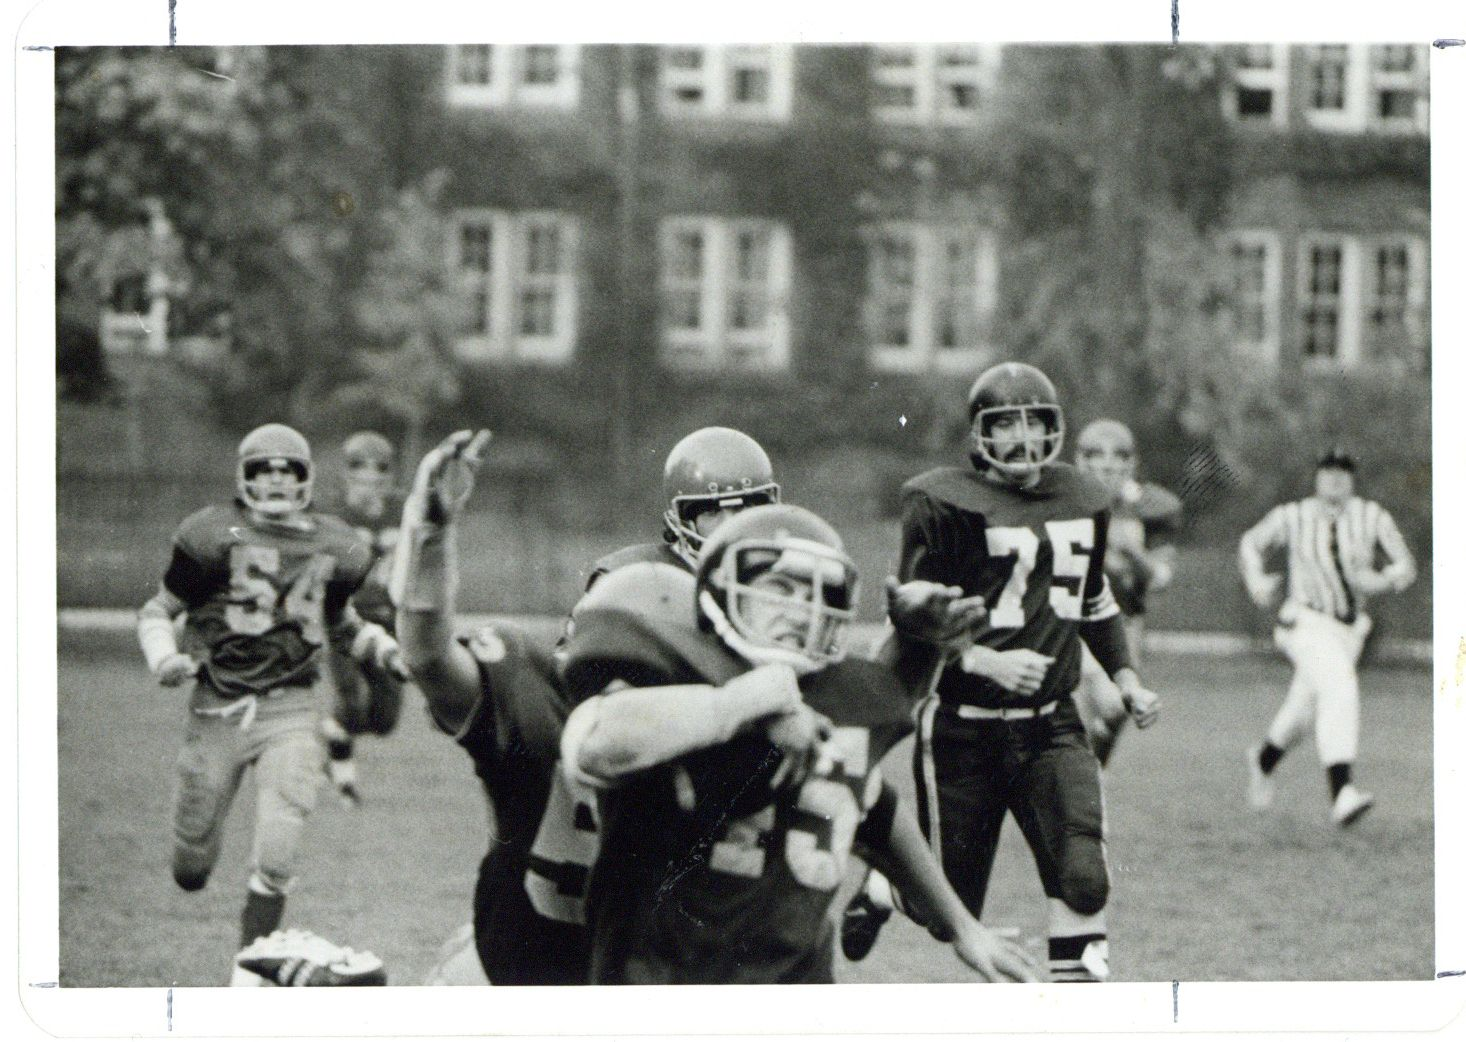 Image depicts a black and white photo of a football team celebrating a touchdown